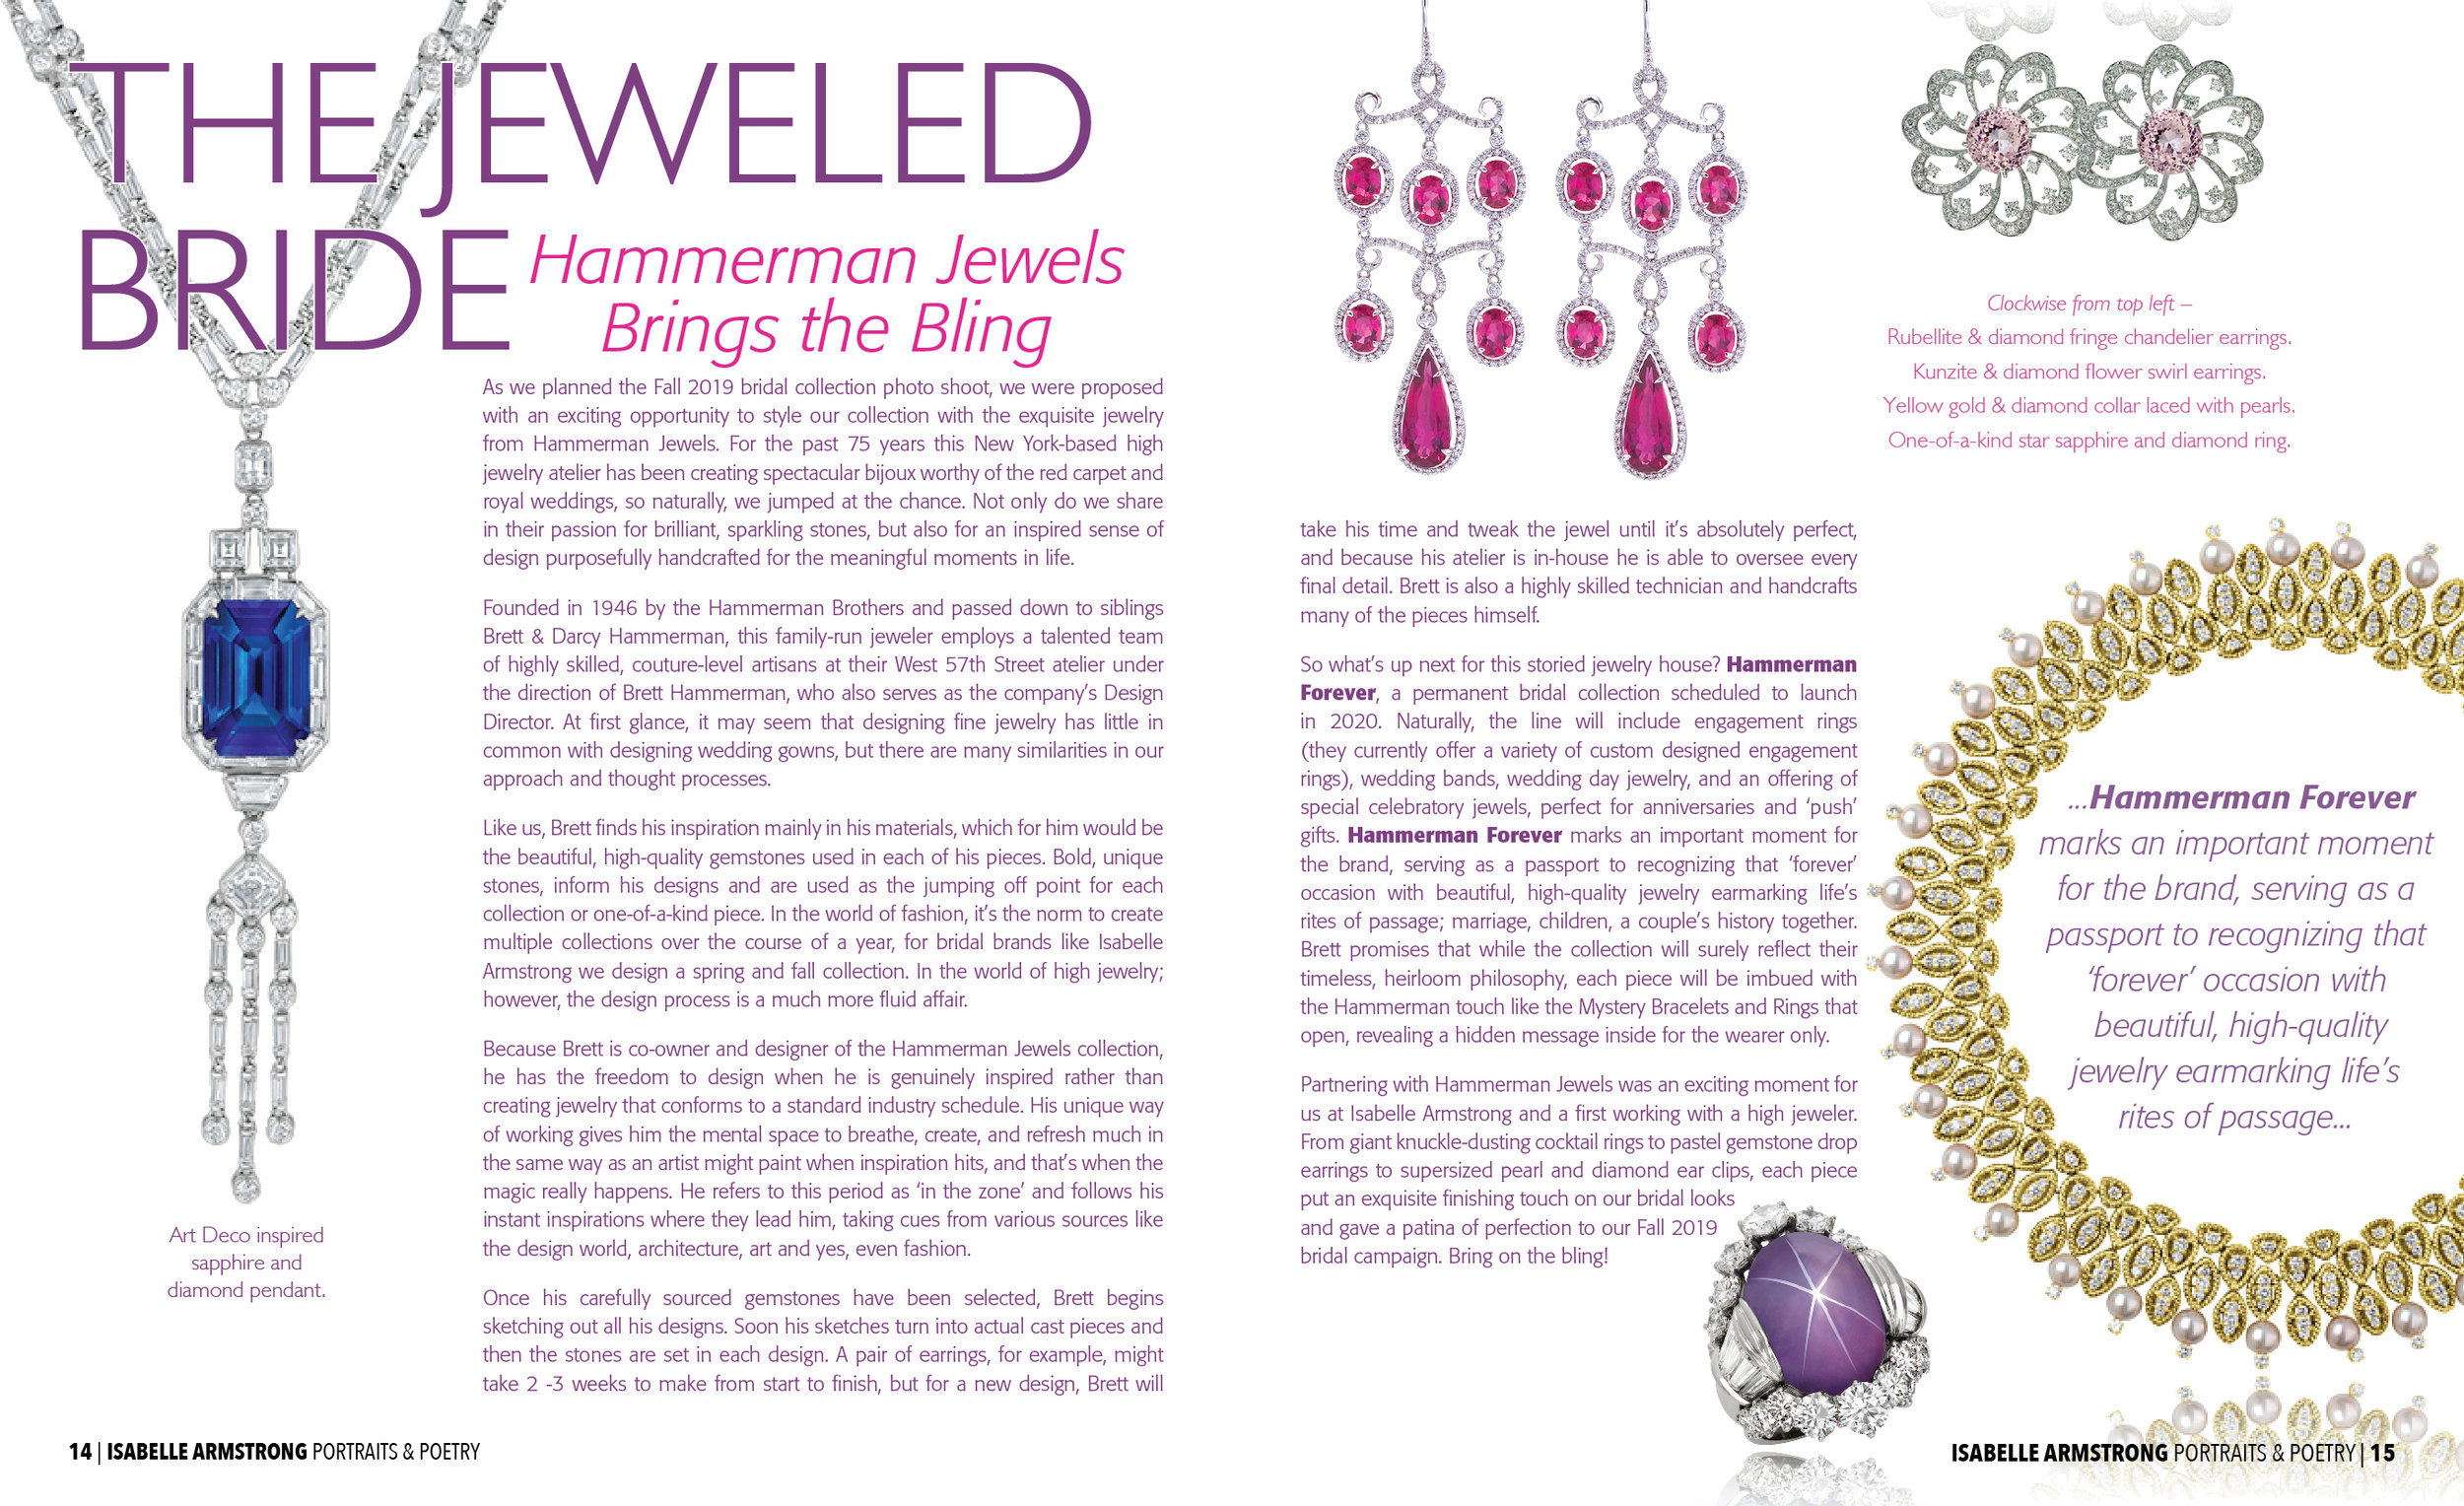 hammerman jewelry feature / isabelle armstrong digital content